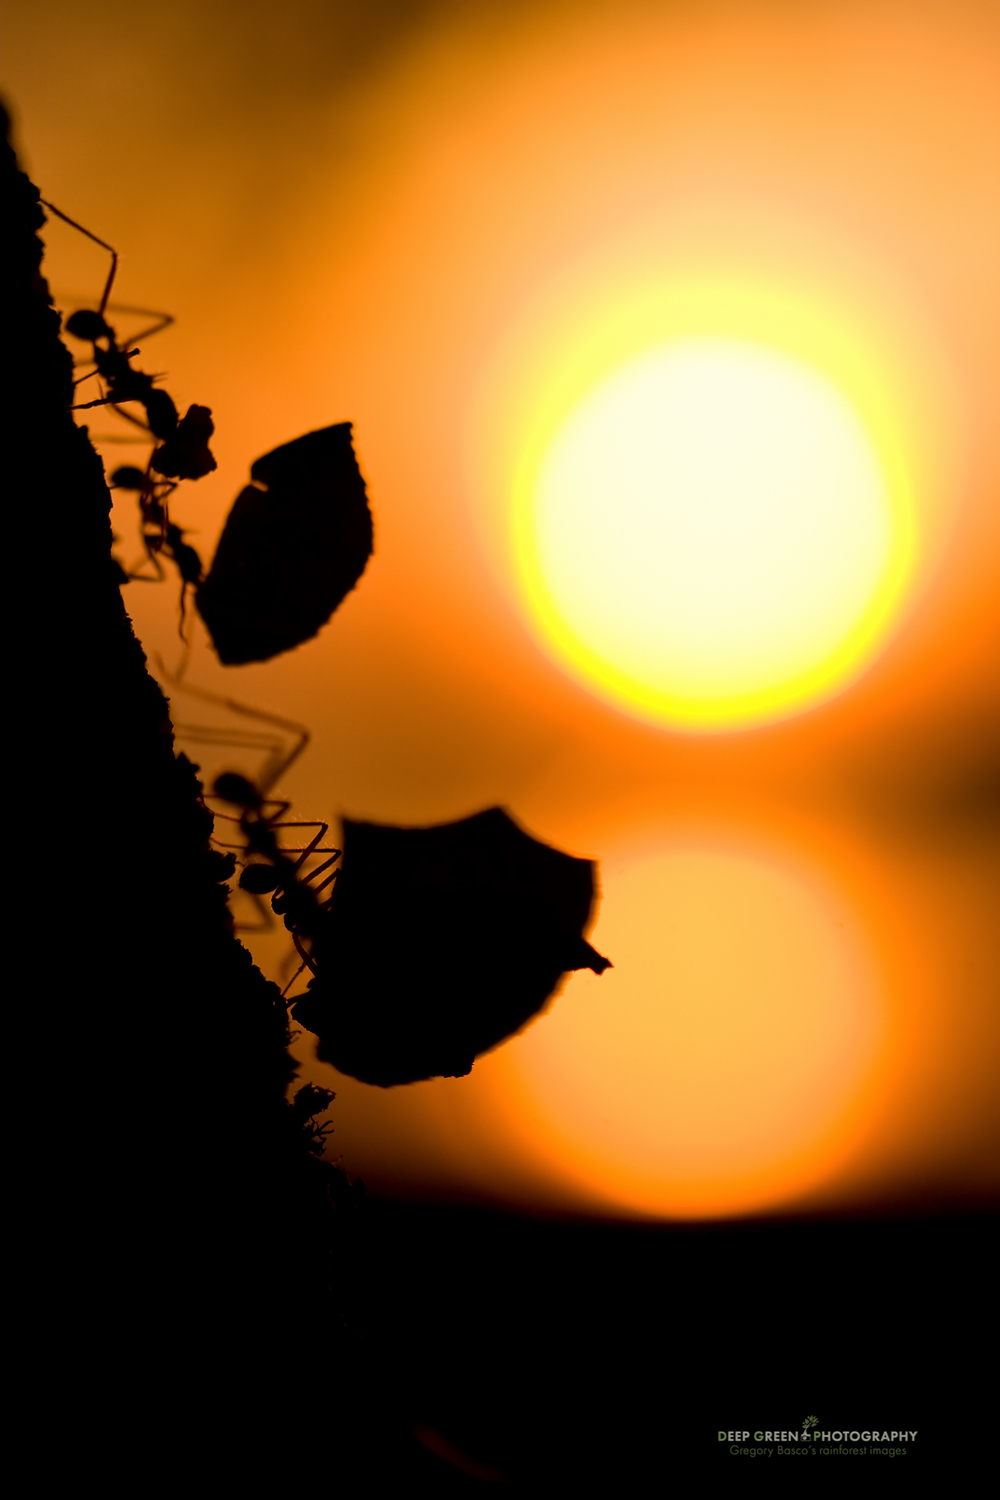 leafcutter ants work as the sun sets over the Pacific Ocean